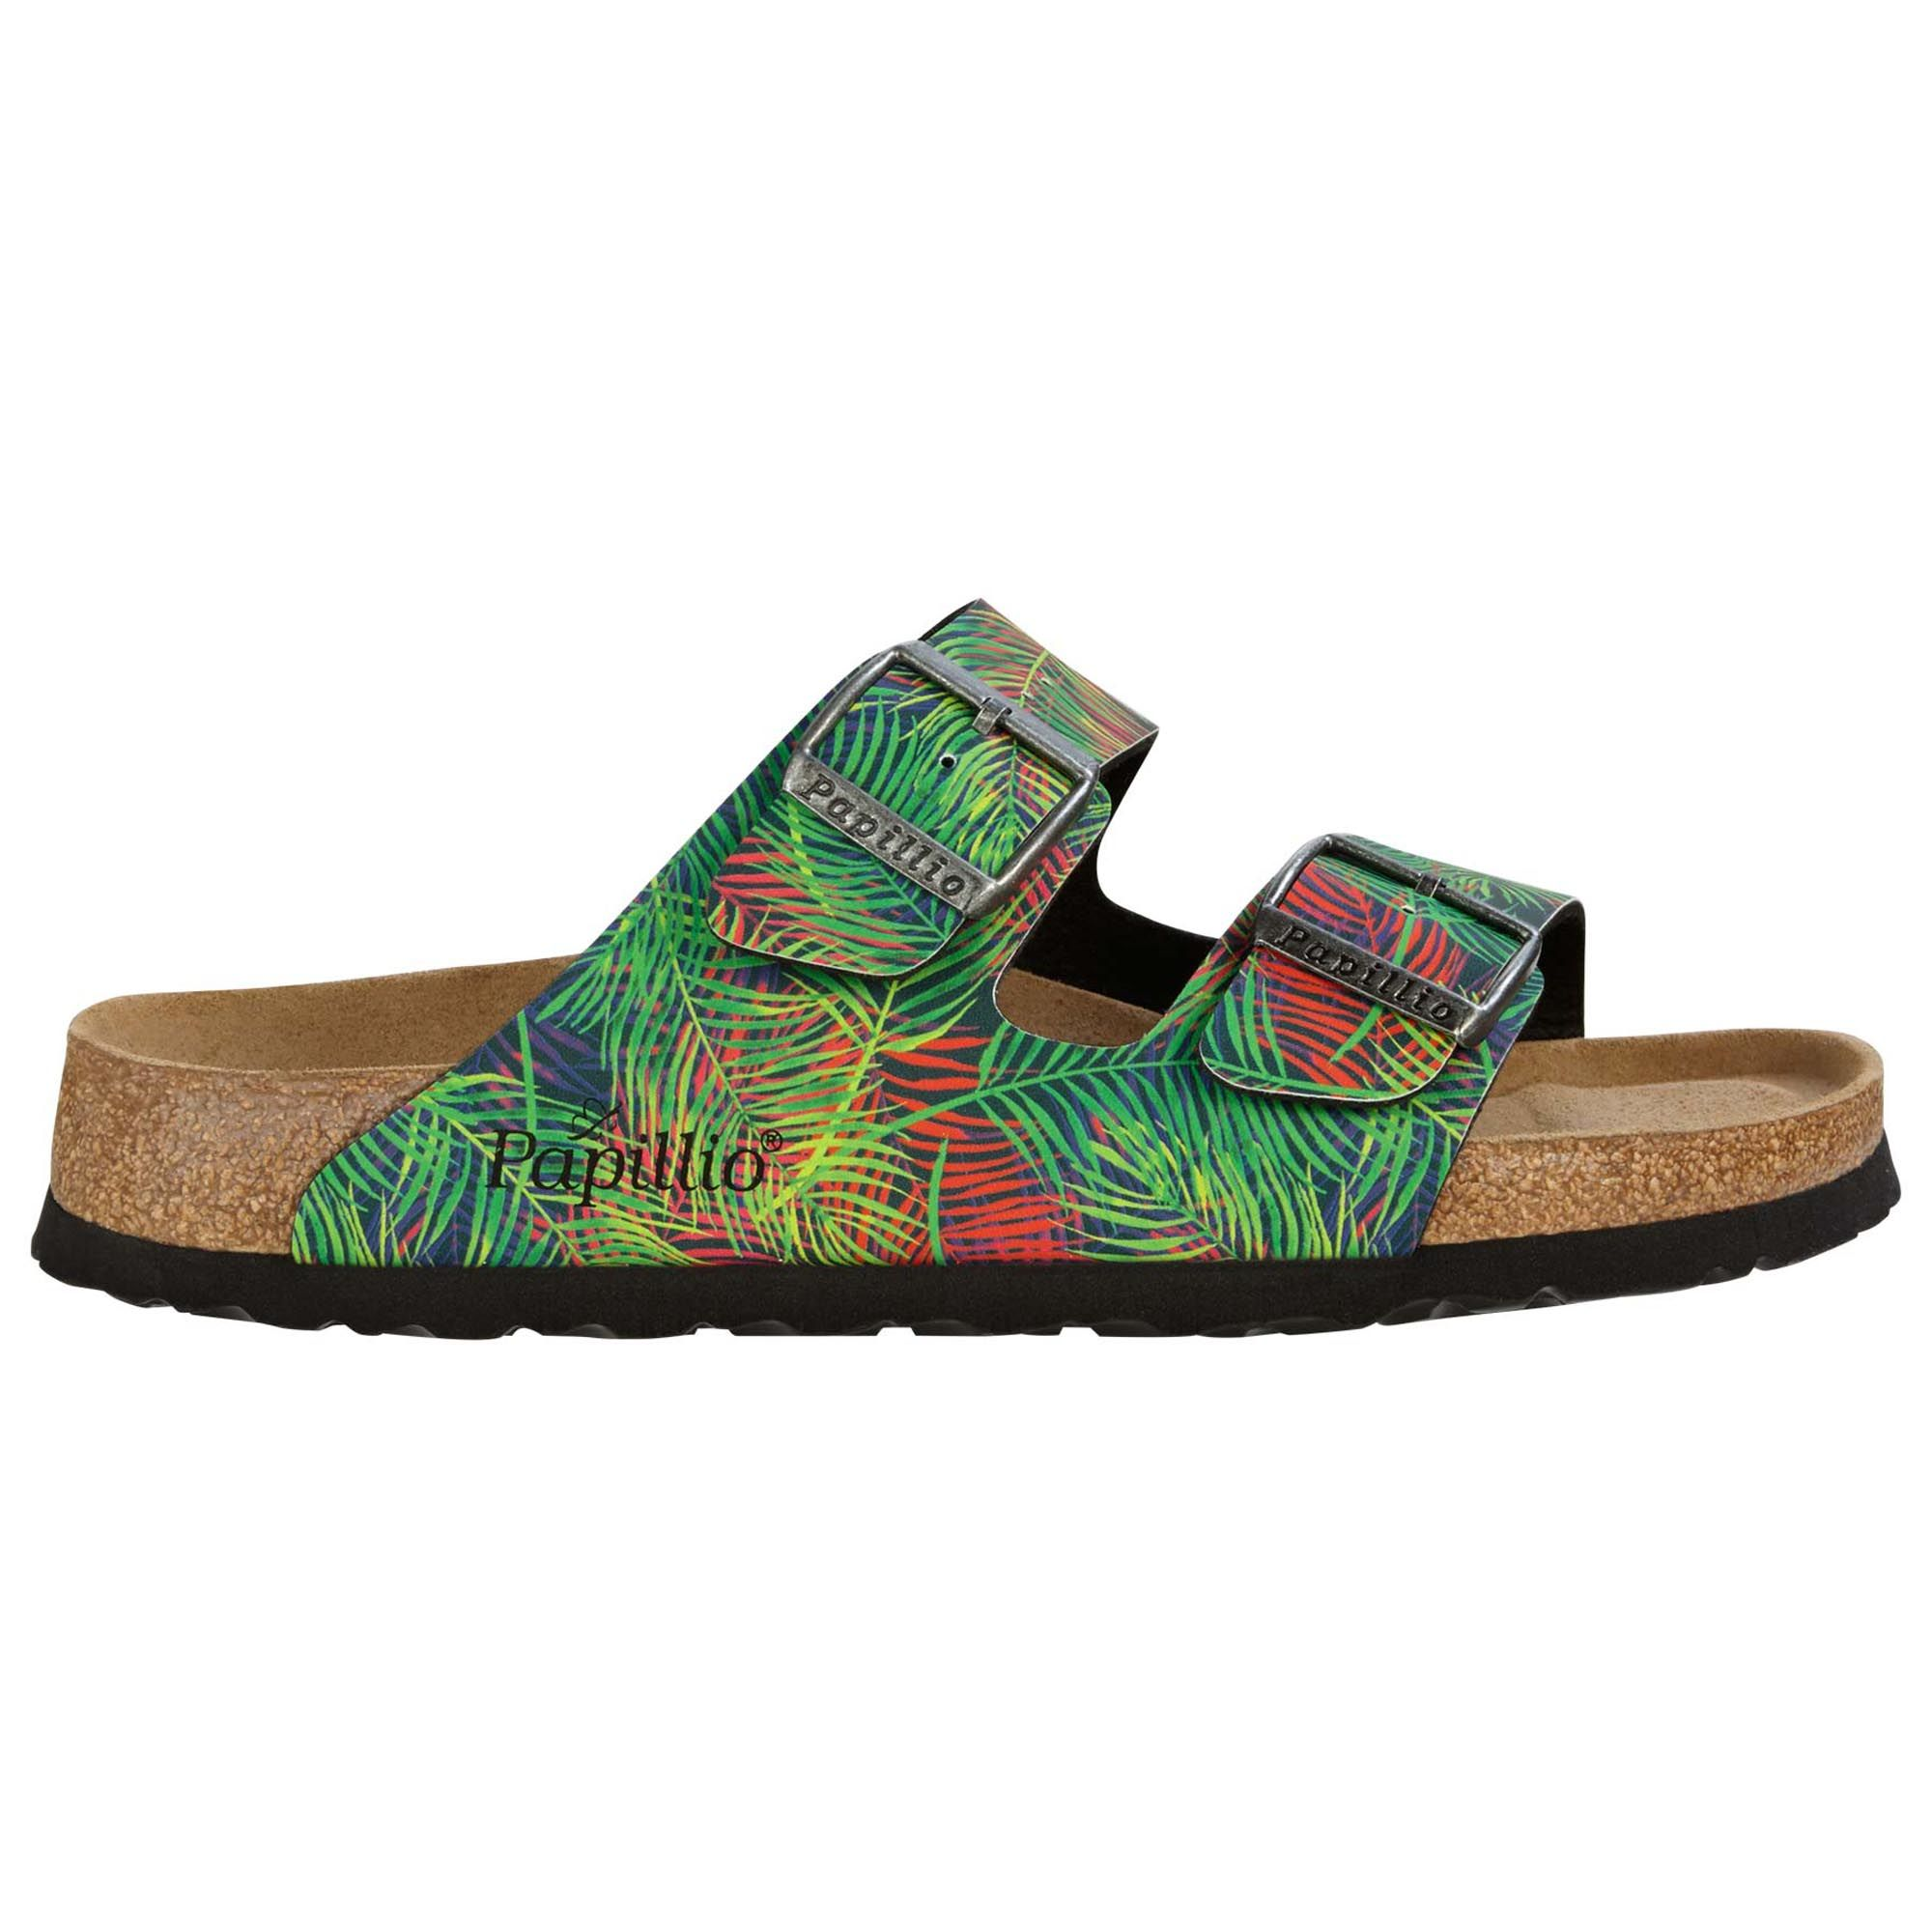 4cc9ffef9cb21 Birkenstock Arizona 364073 KLAPKI TROPICAL - 41 - 7350574940 ...